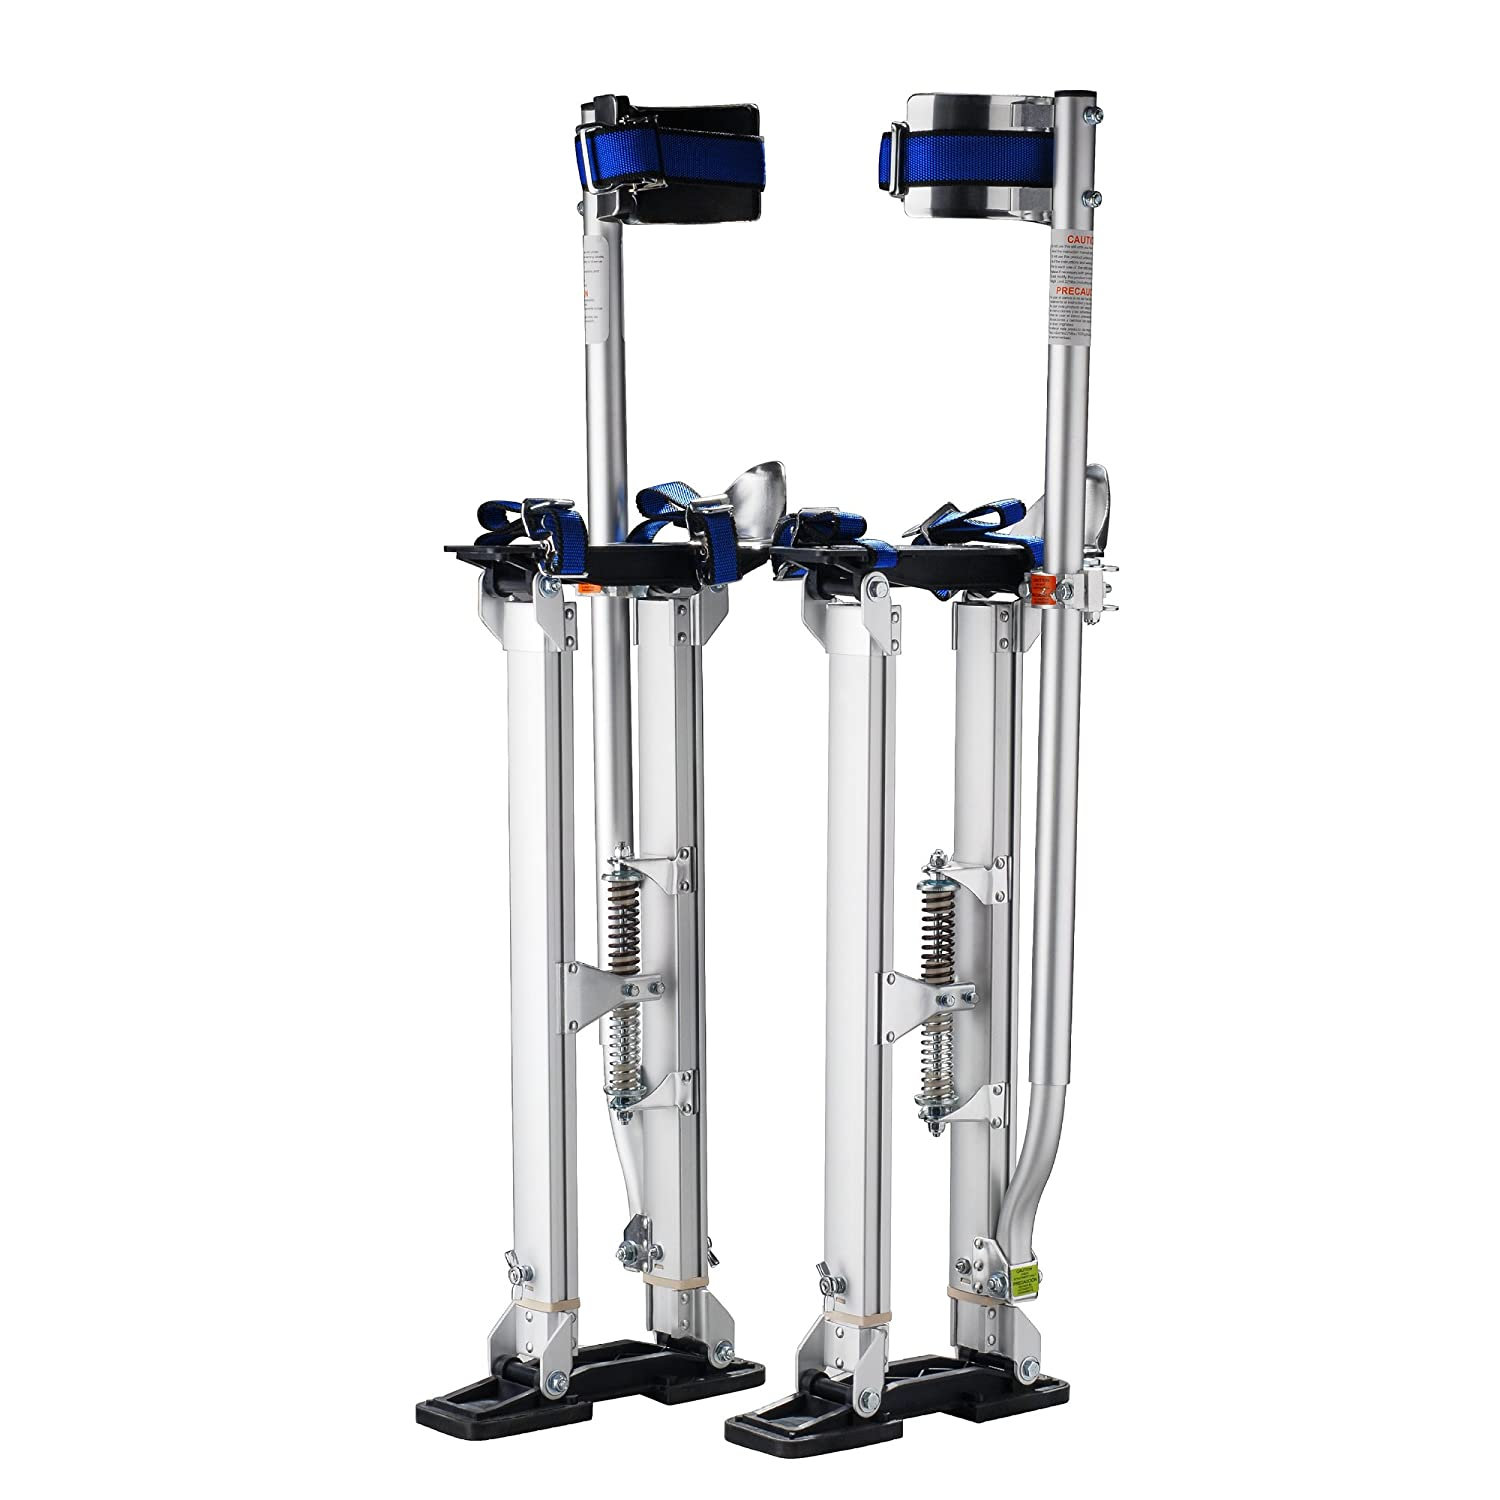 Image of Drywall Lifts Pentagon Tool Professional 18'-30' Silver Drywall Stilts Highest Quality